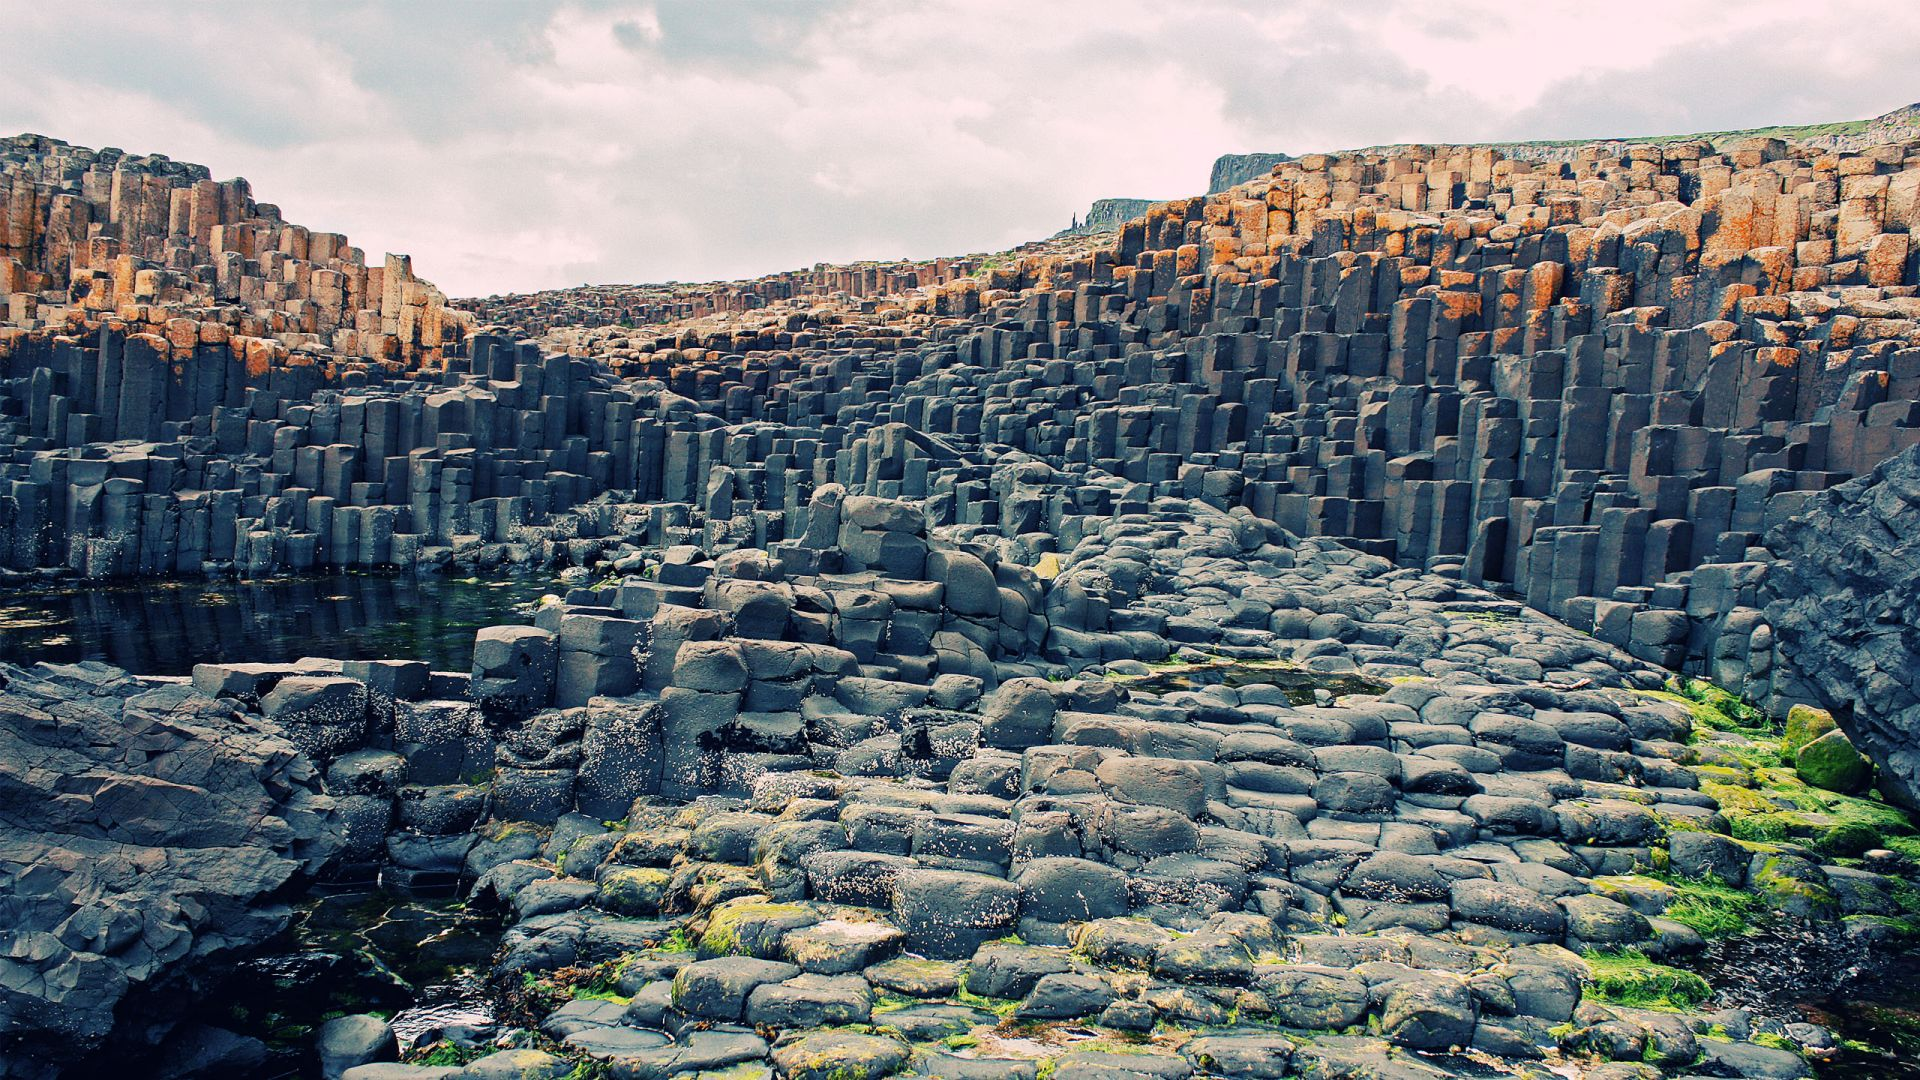 Giants causeway in northern Ireland [1920x1080] wallpaper 1920x1080